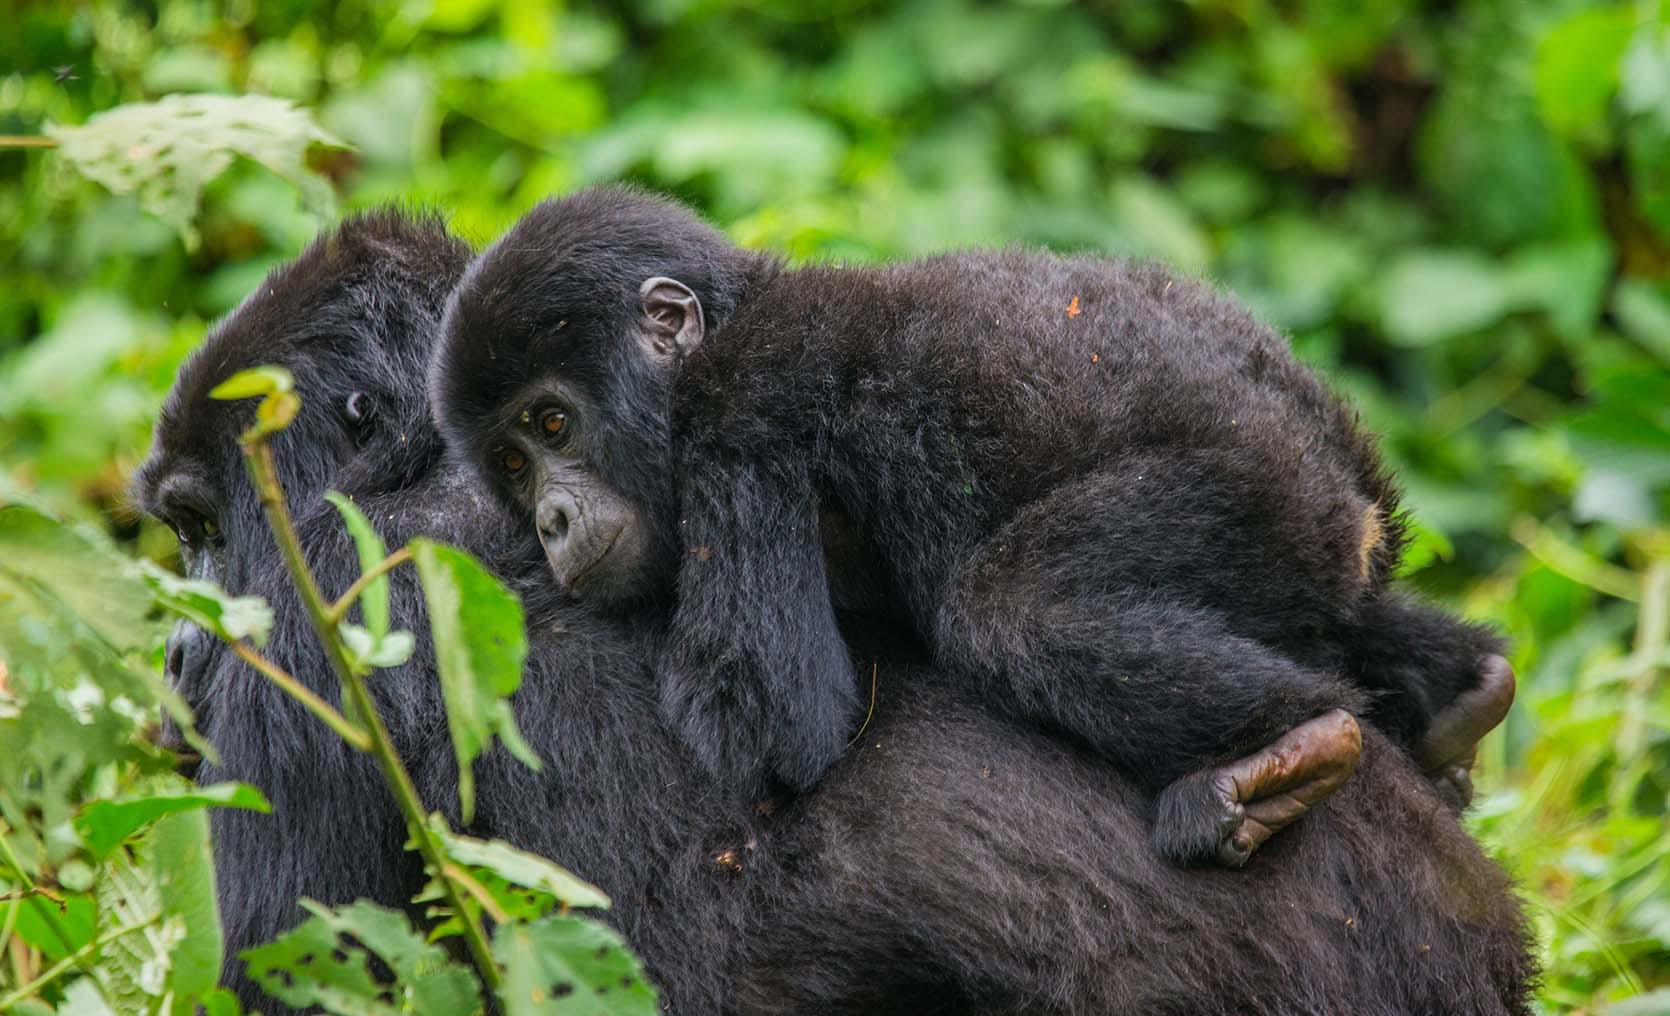 Mother and infant gorillas